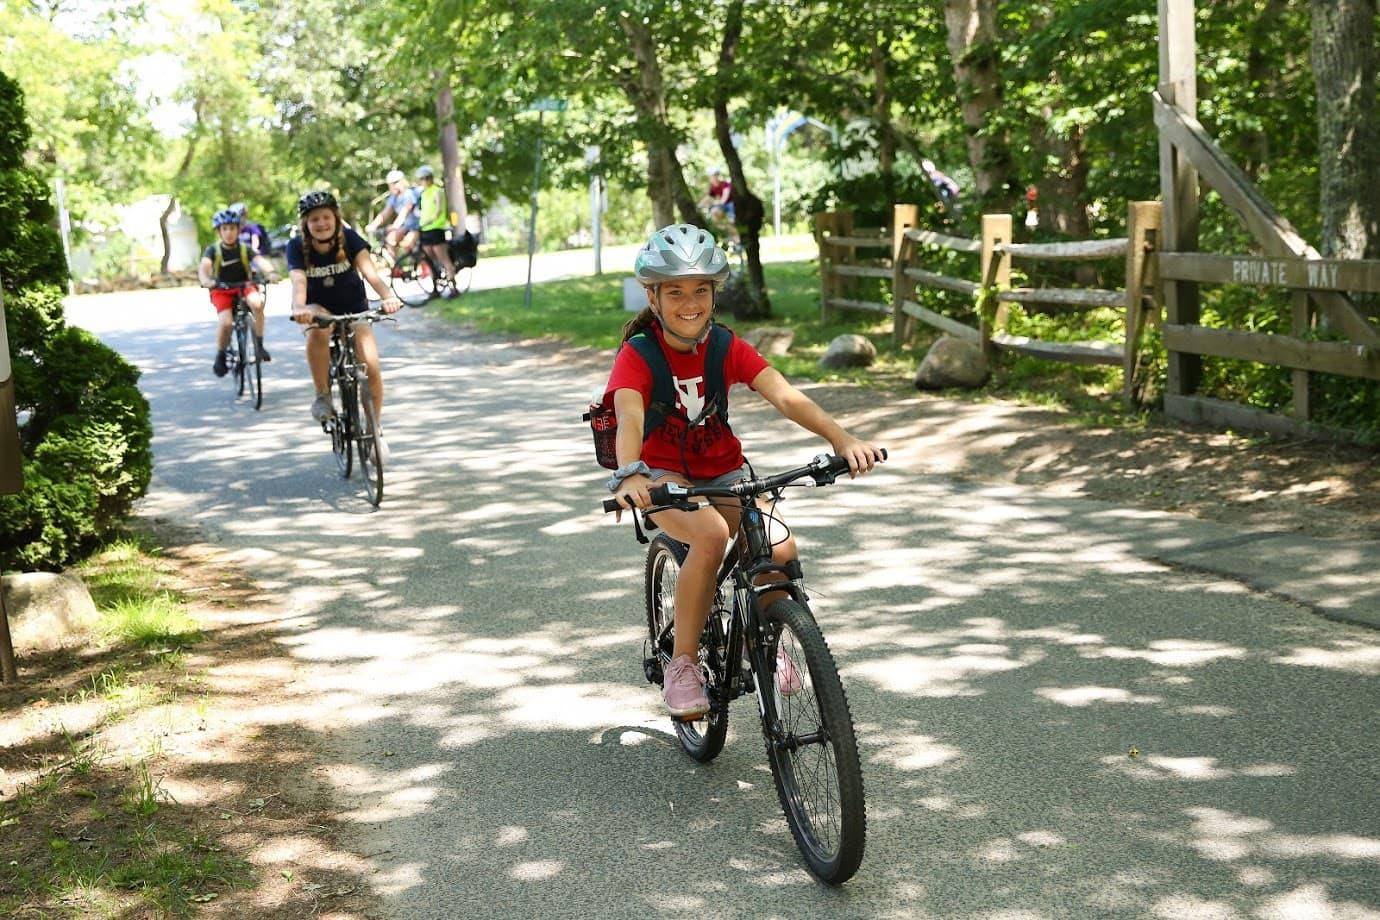 Teen biking adventure program in New England